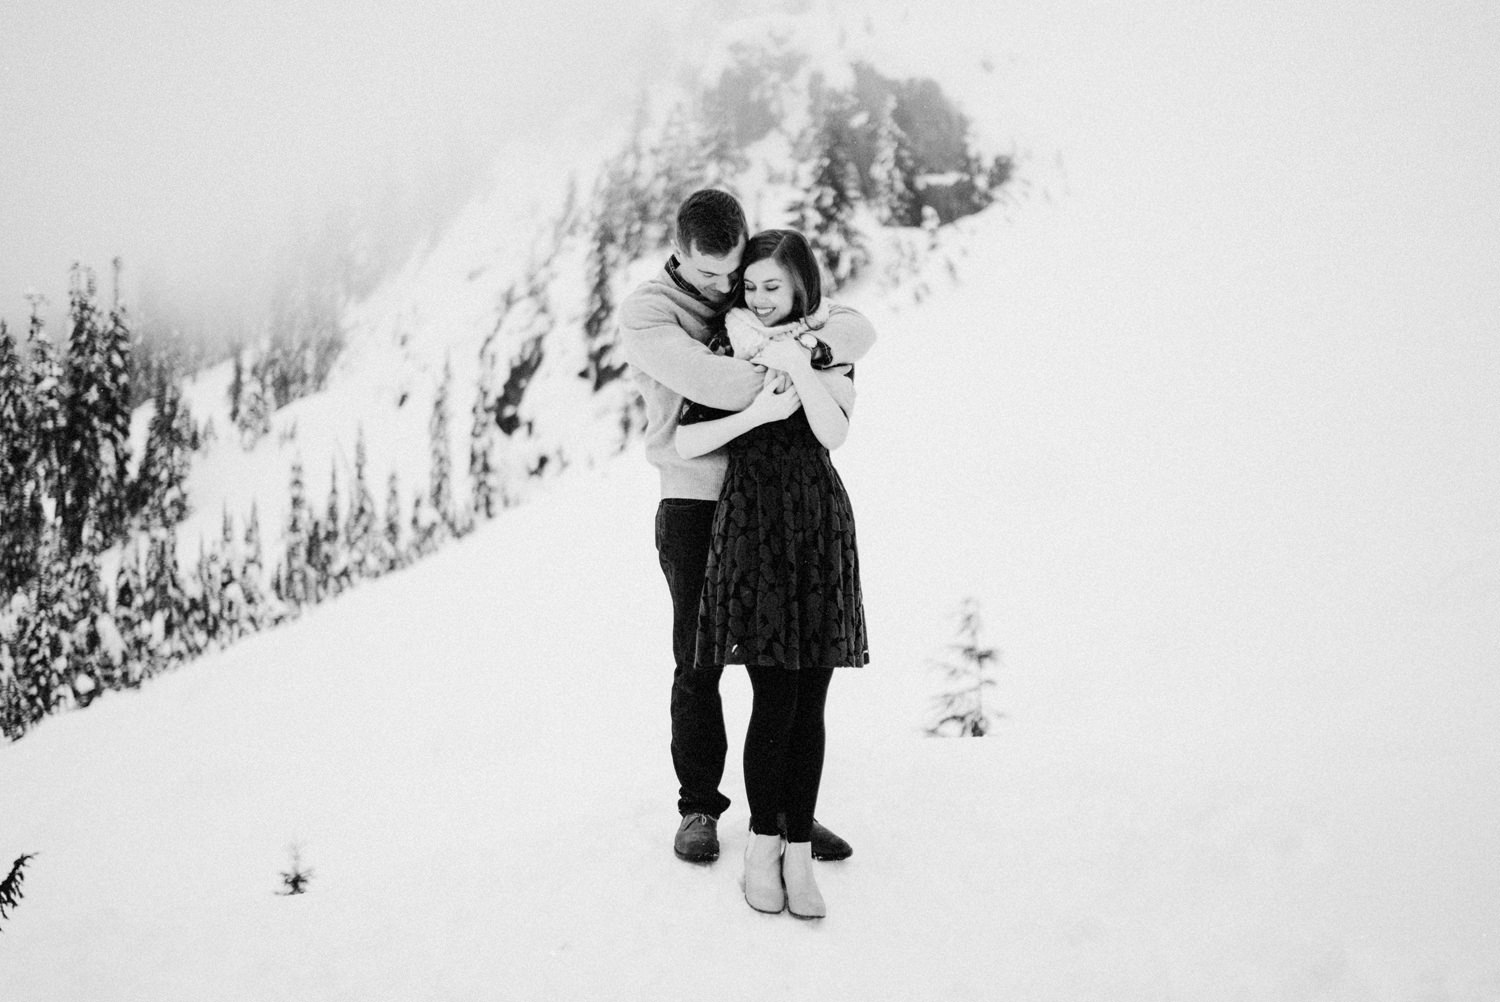 030-snoqualmie-mountain-engagement-session-seattle-film-wedding-photographer-ryan-flynn.jpg